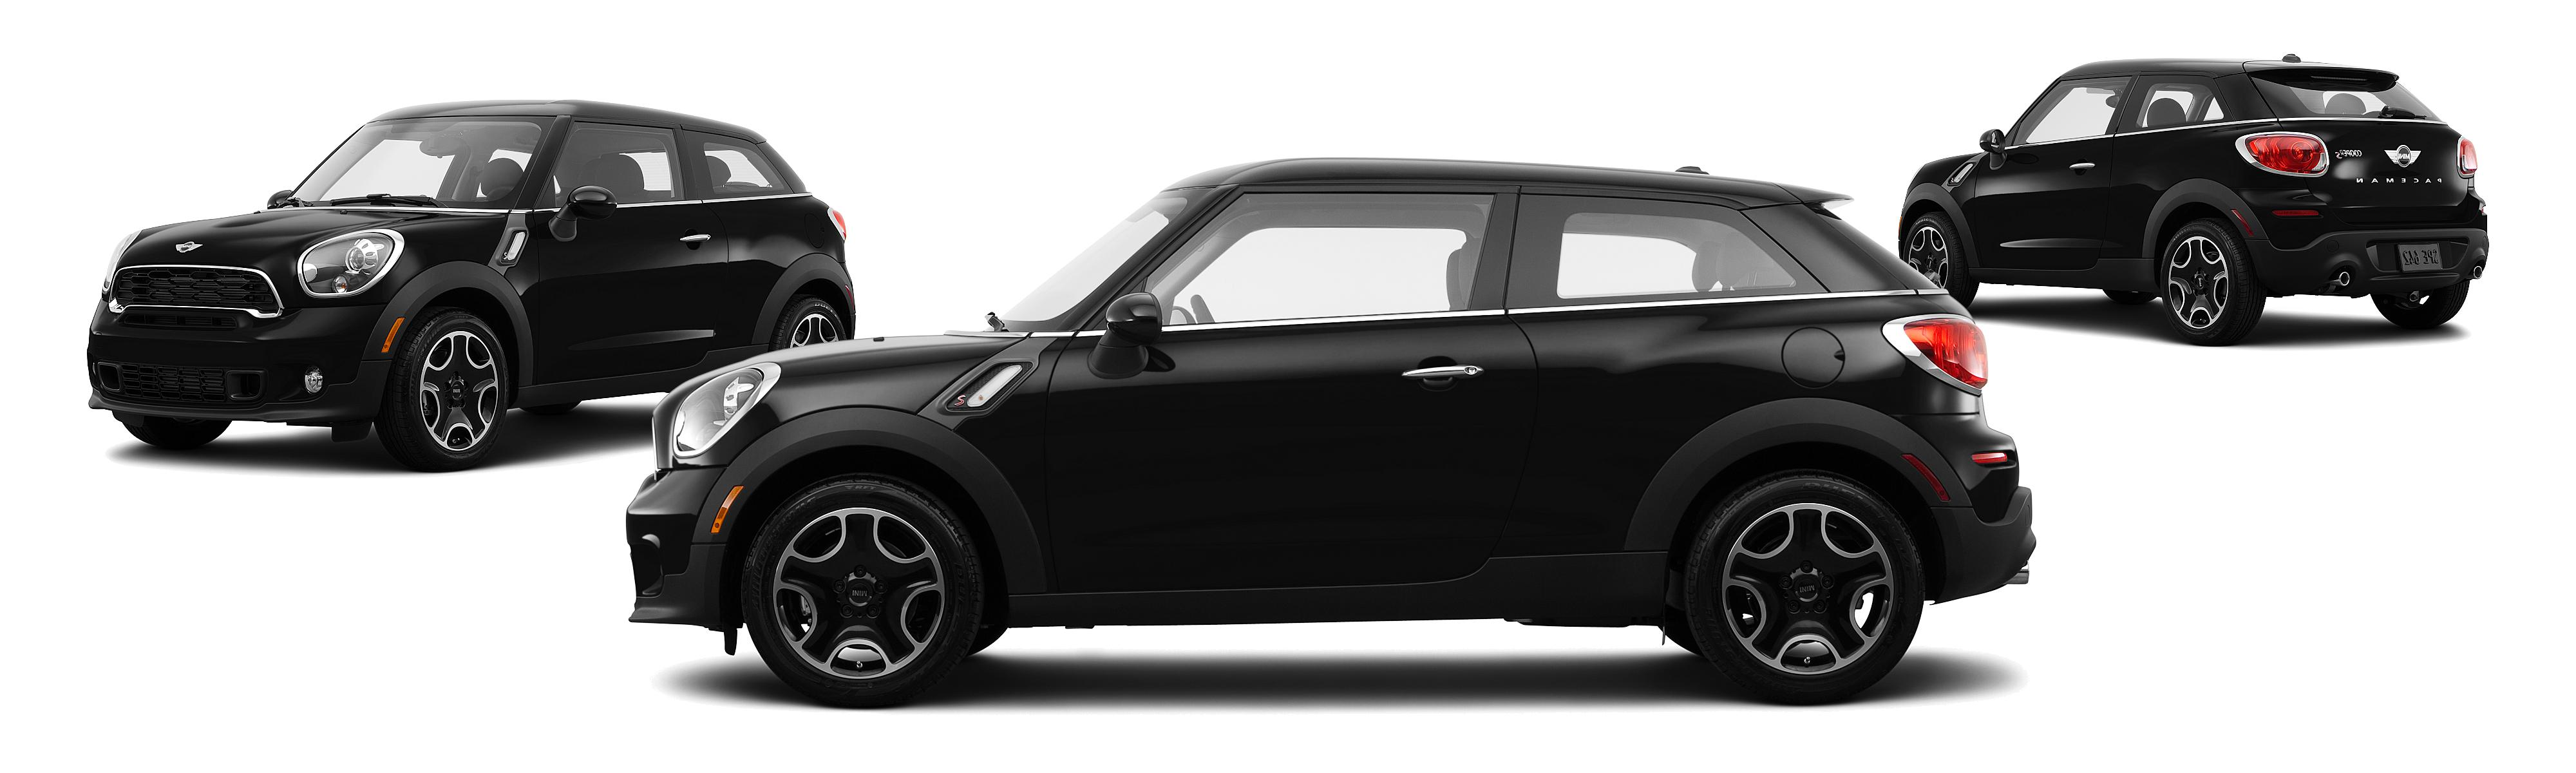 2014 Mini Cooper Paceman S All4 Mini Cooper Cars